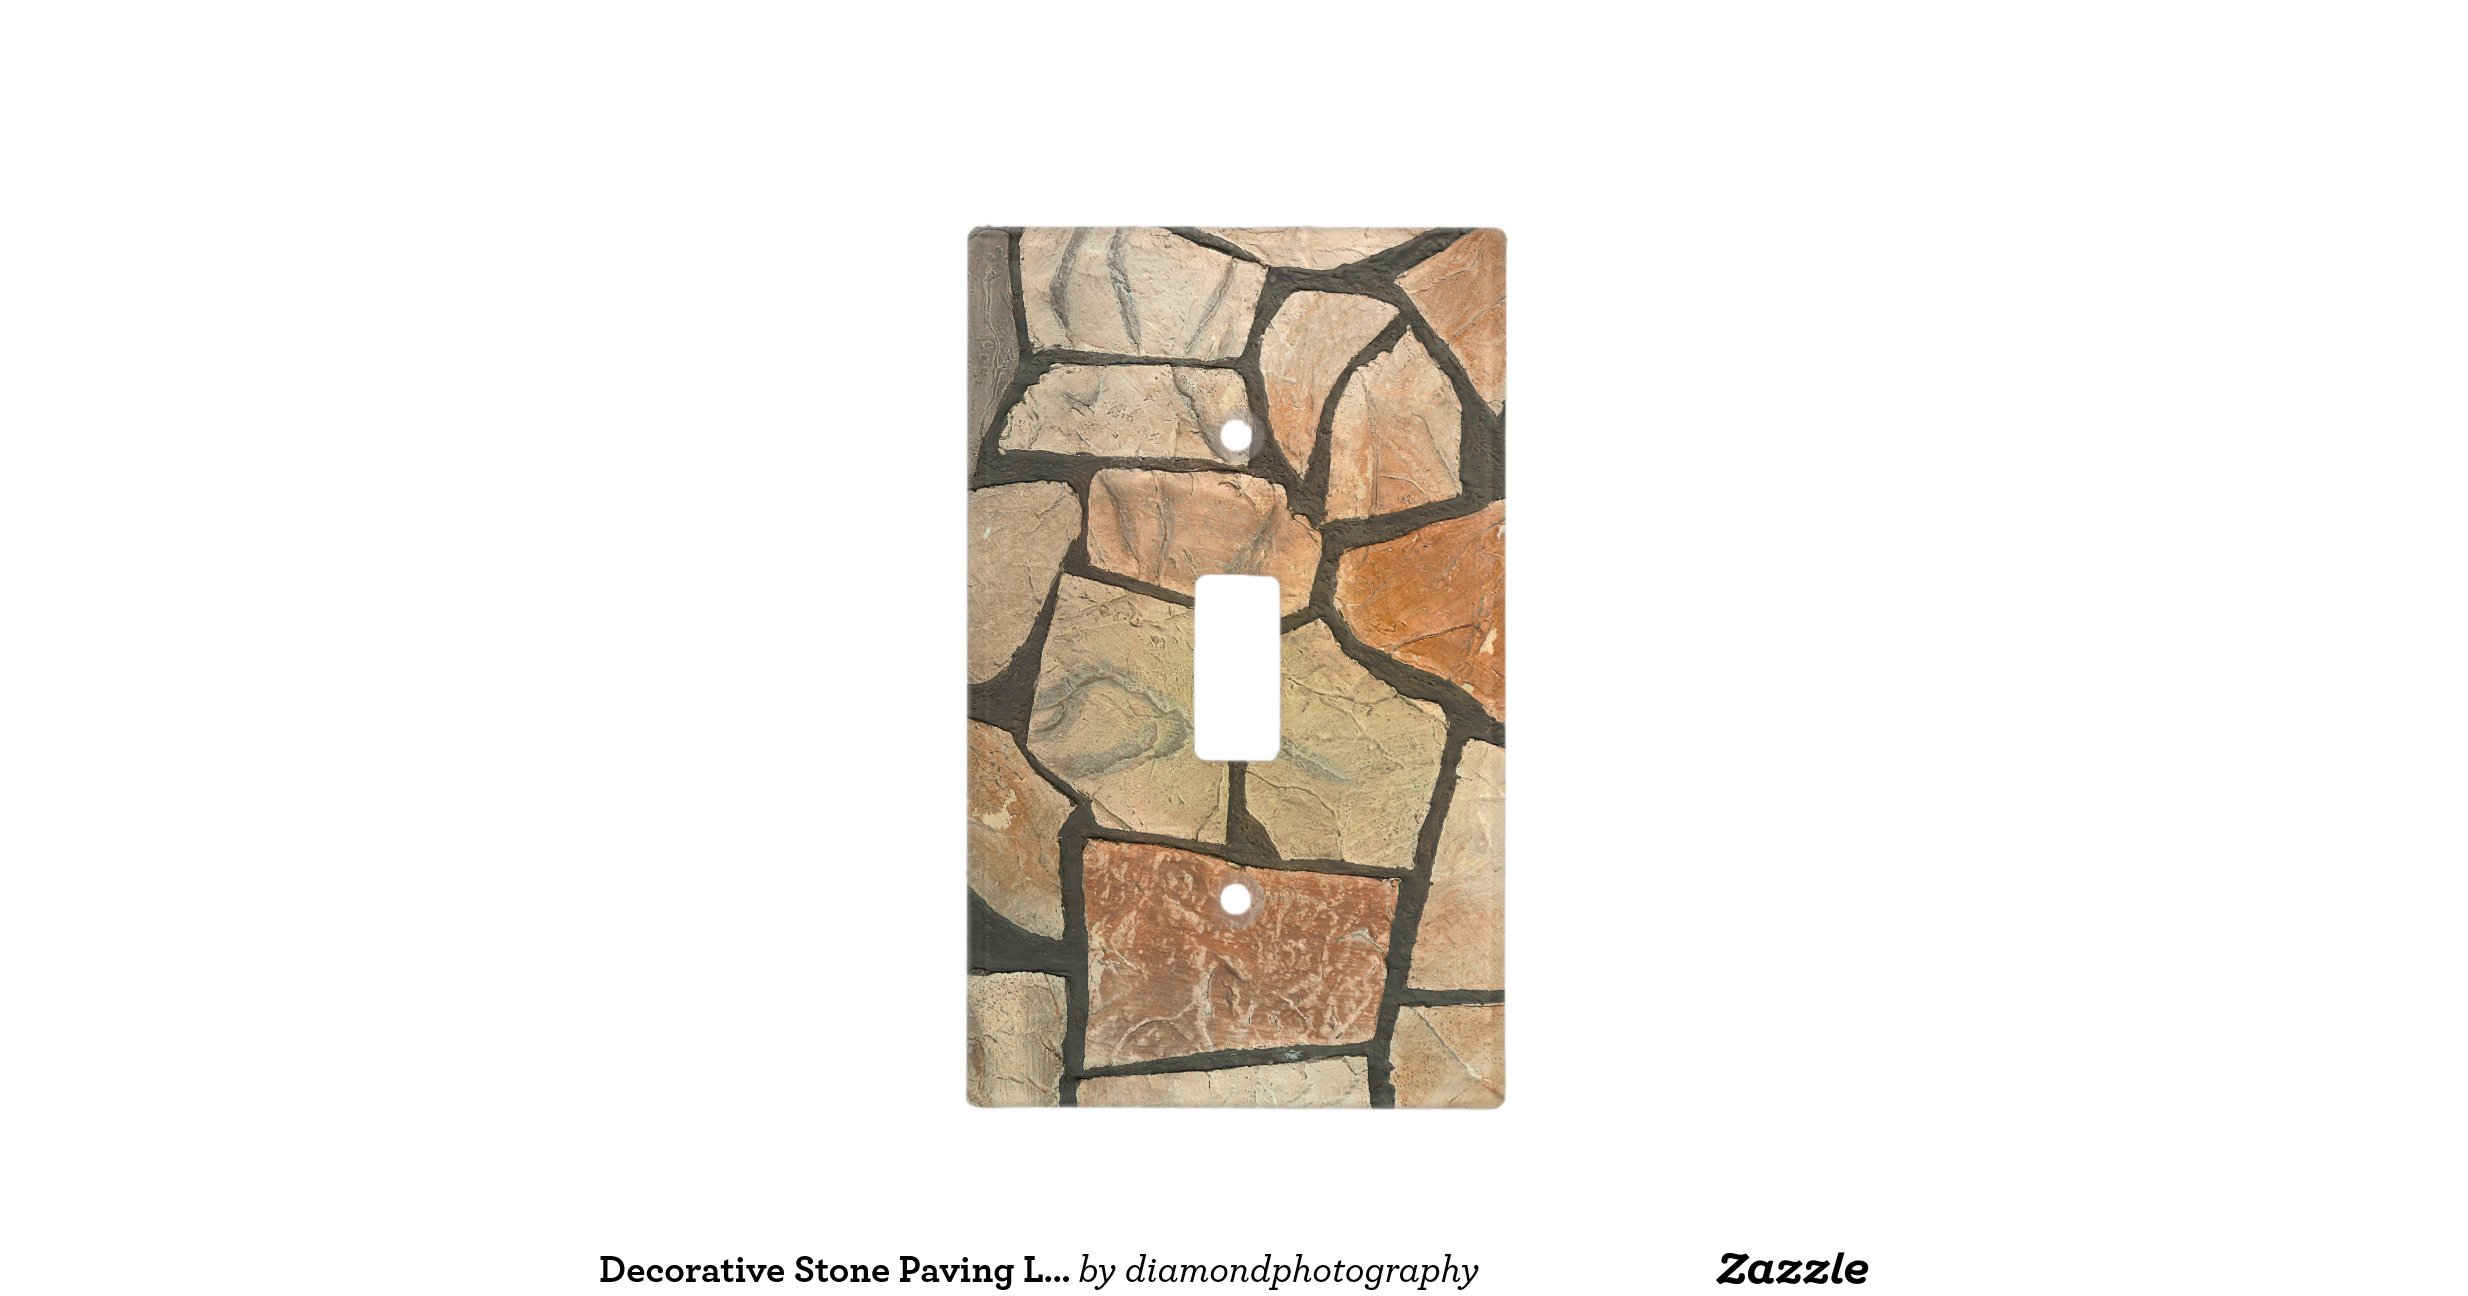 Decorative Stone Paving Look Switch Plate Covers